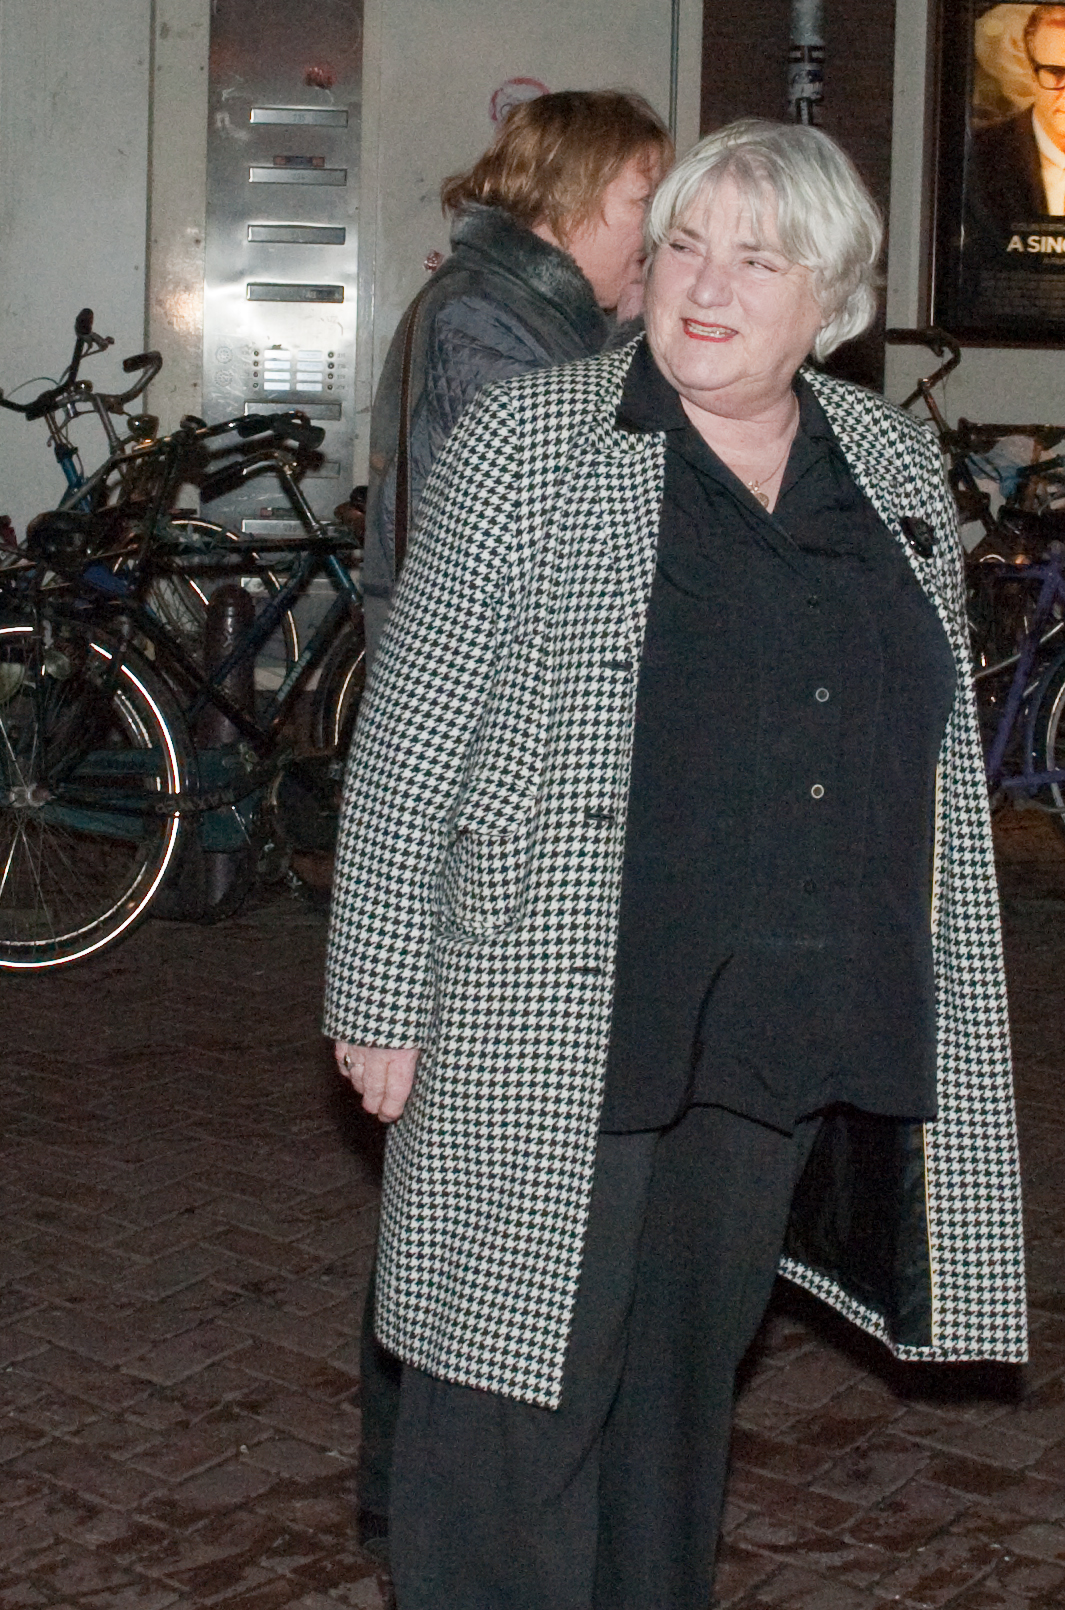 The 82-year old daughter of father (?) and mother(?) Nelly Frijda in 2018 photo. Nelly Frijda earned a  million dollar salary - leaving the net worth at 3 million in 2018